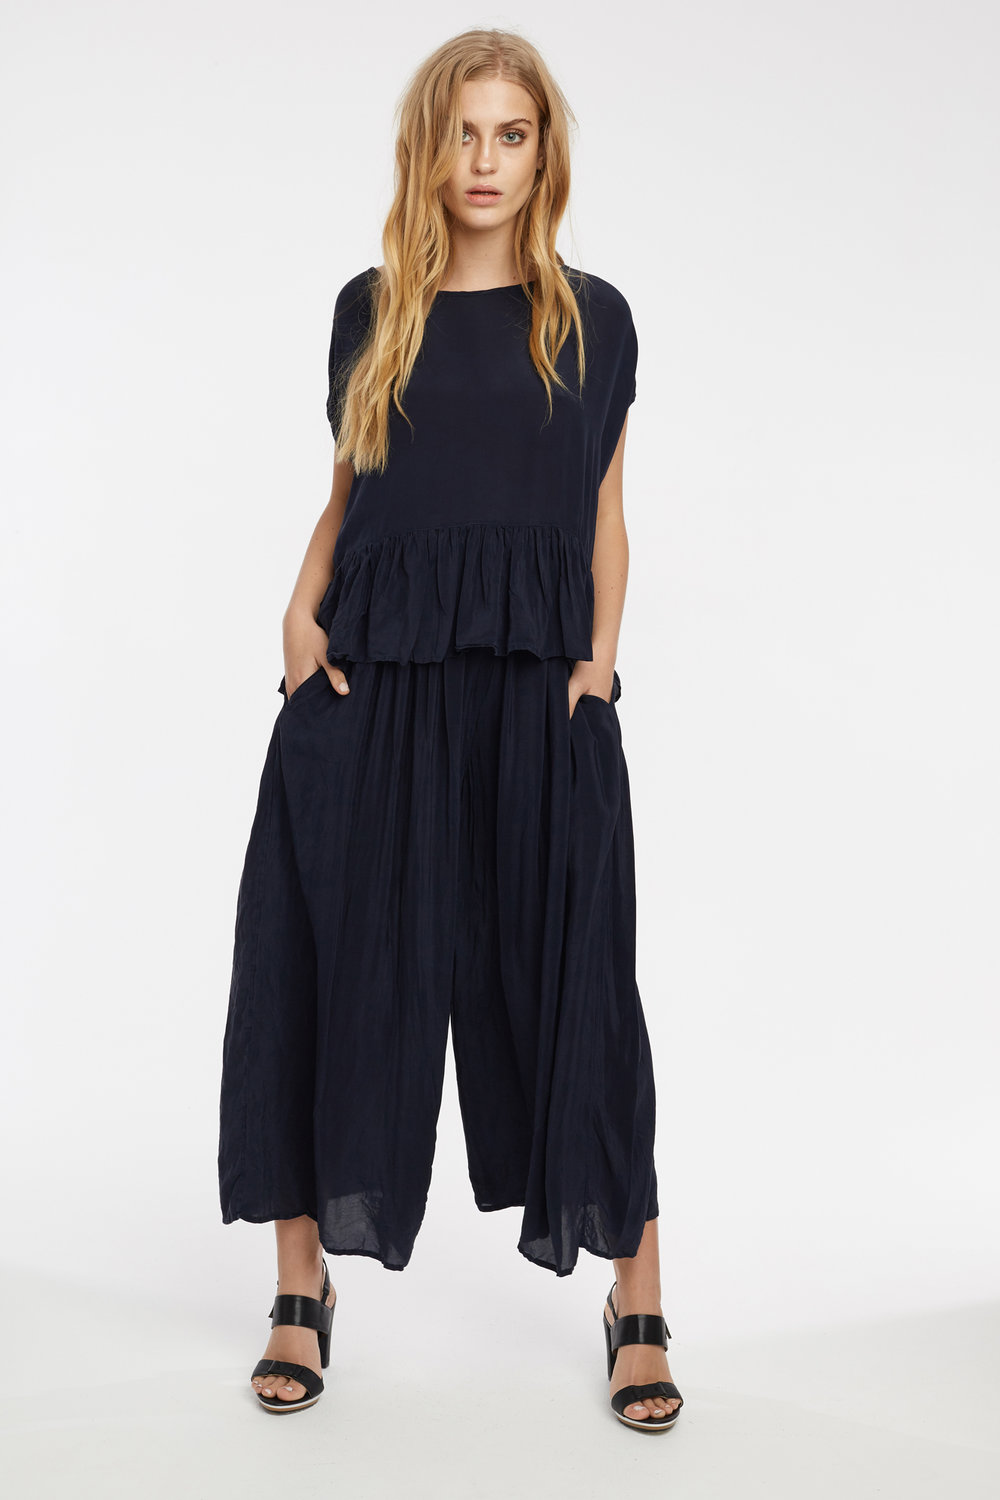 FEATHER TOP & GRUNDY CULOTTE DARK NAVY